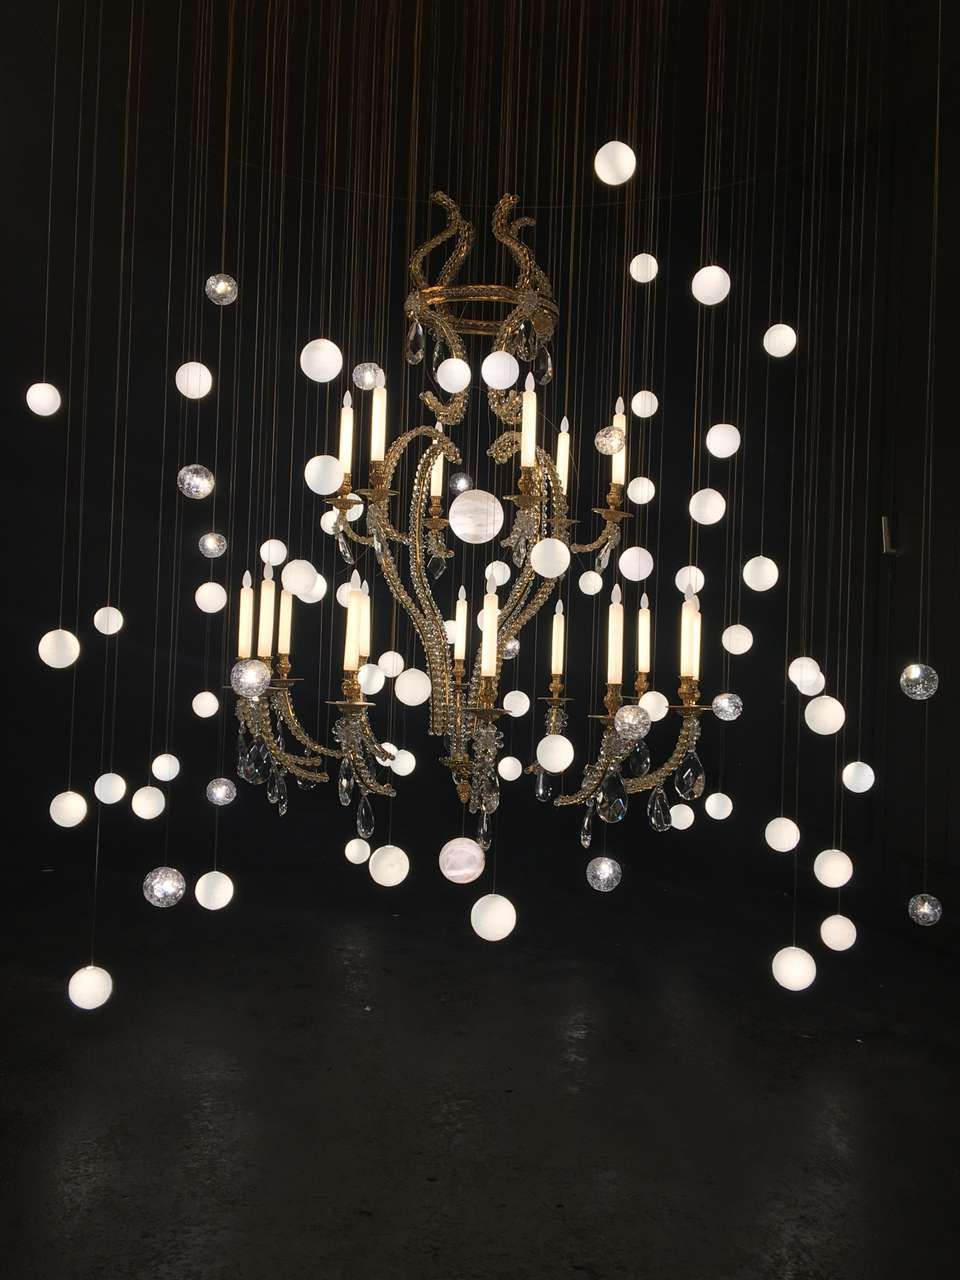 For Sale on 1stdibs The Bespoke chandelier Le Merveilleux